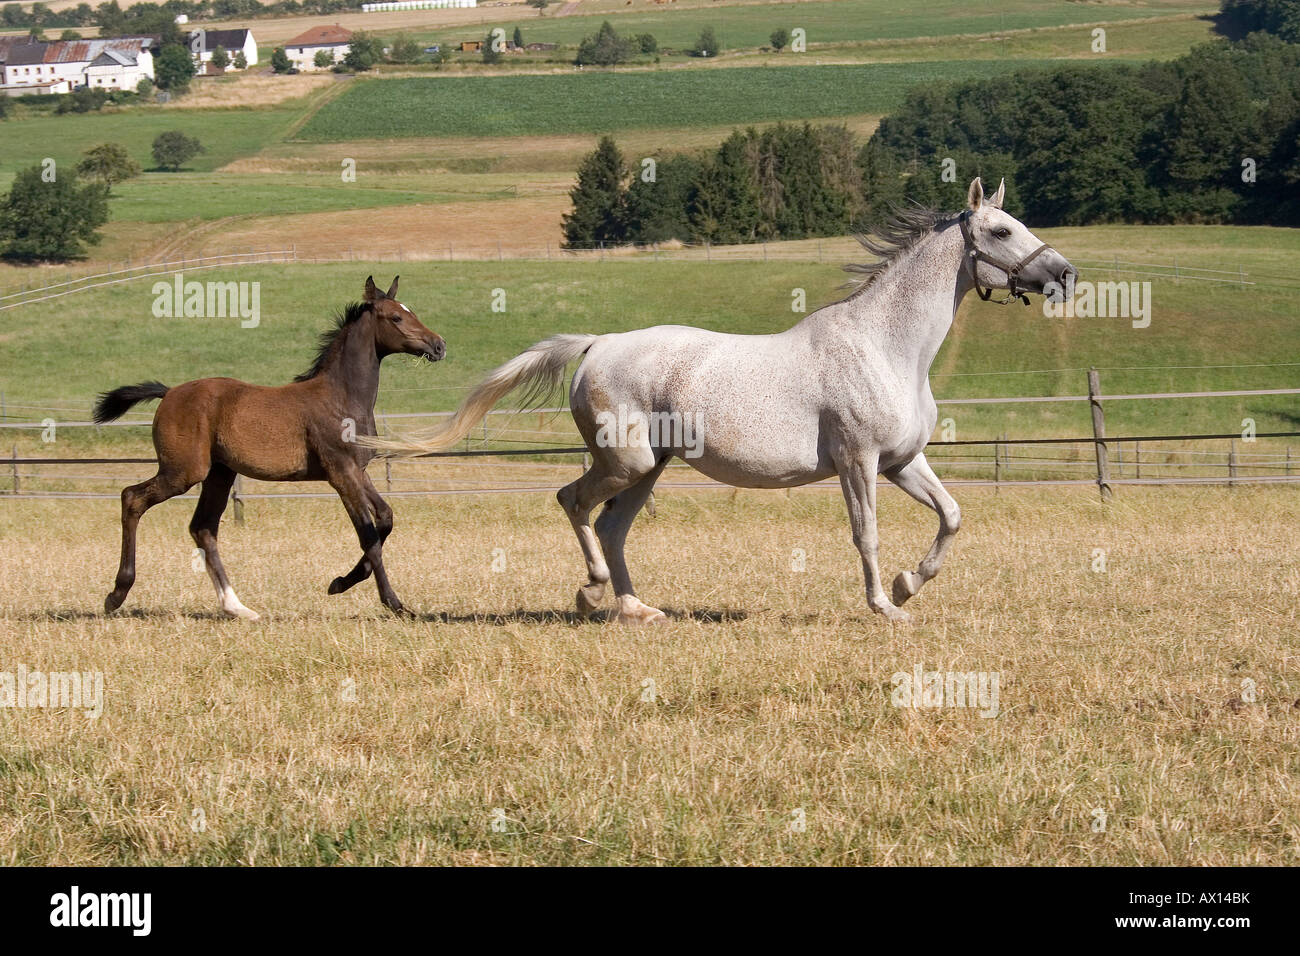 White mare and foal galloping through a meadow, Vulkaneifel, Germany, Europe - Stock Image